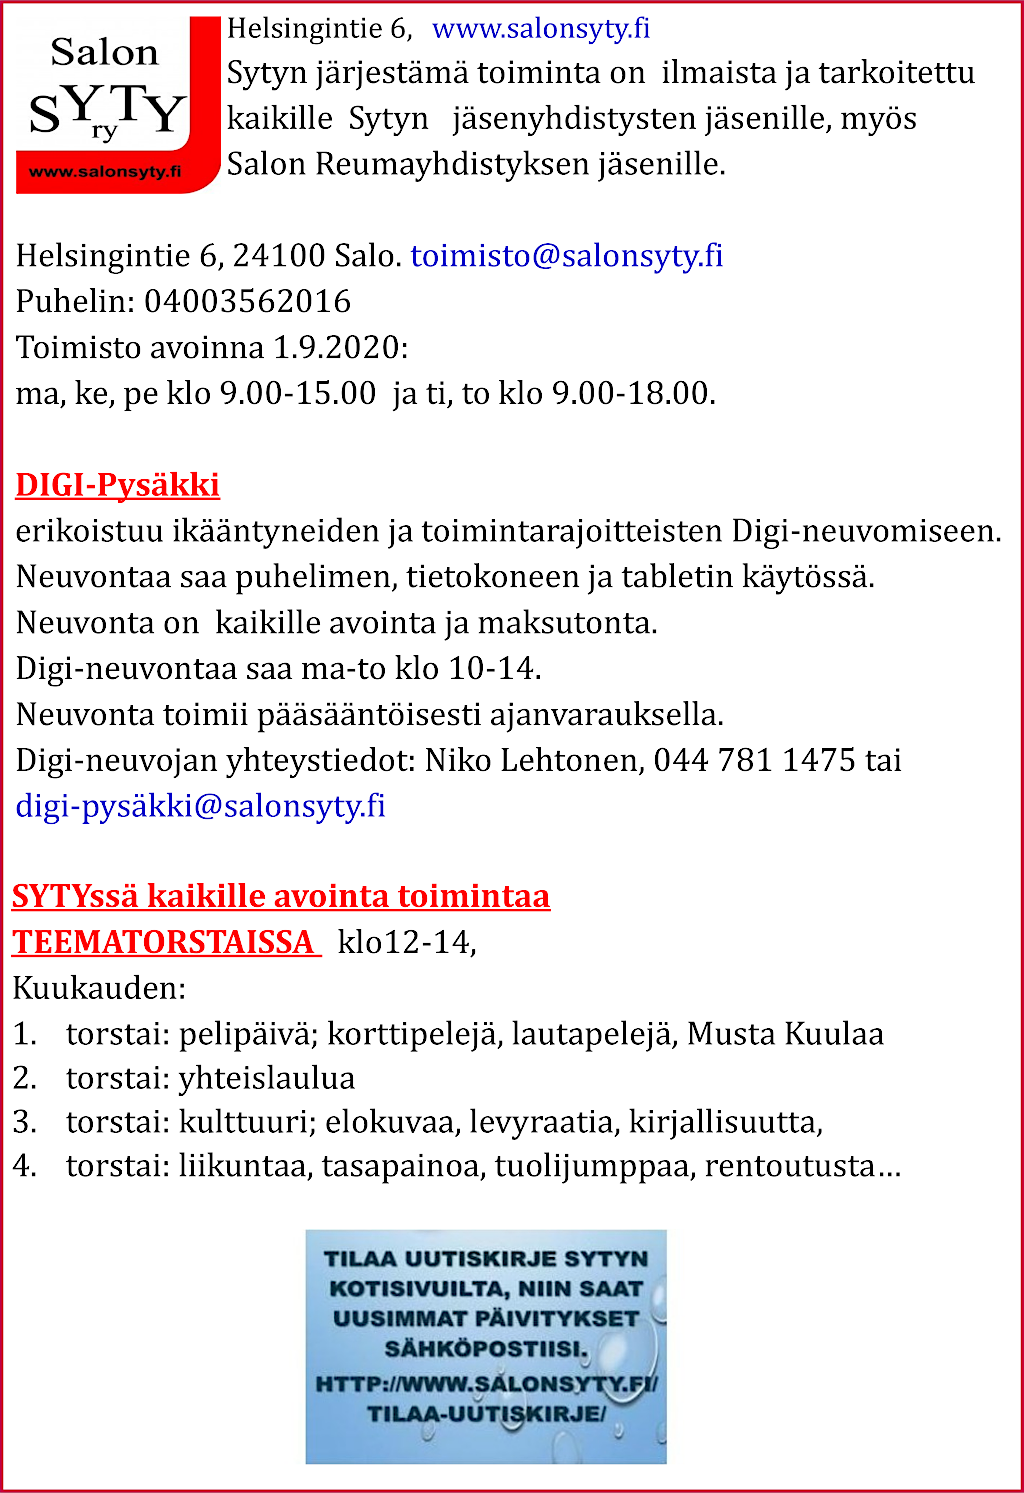 Syty-info.